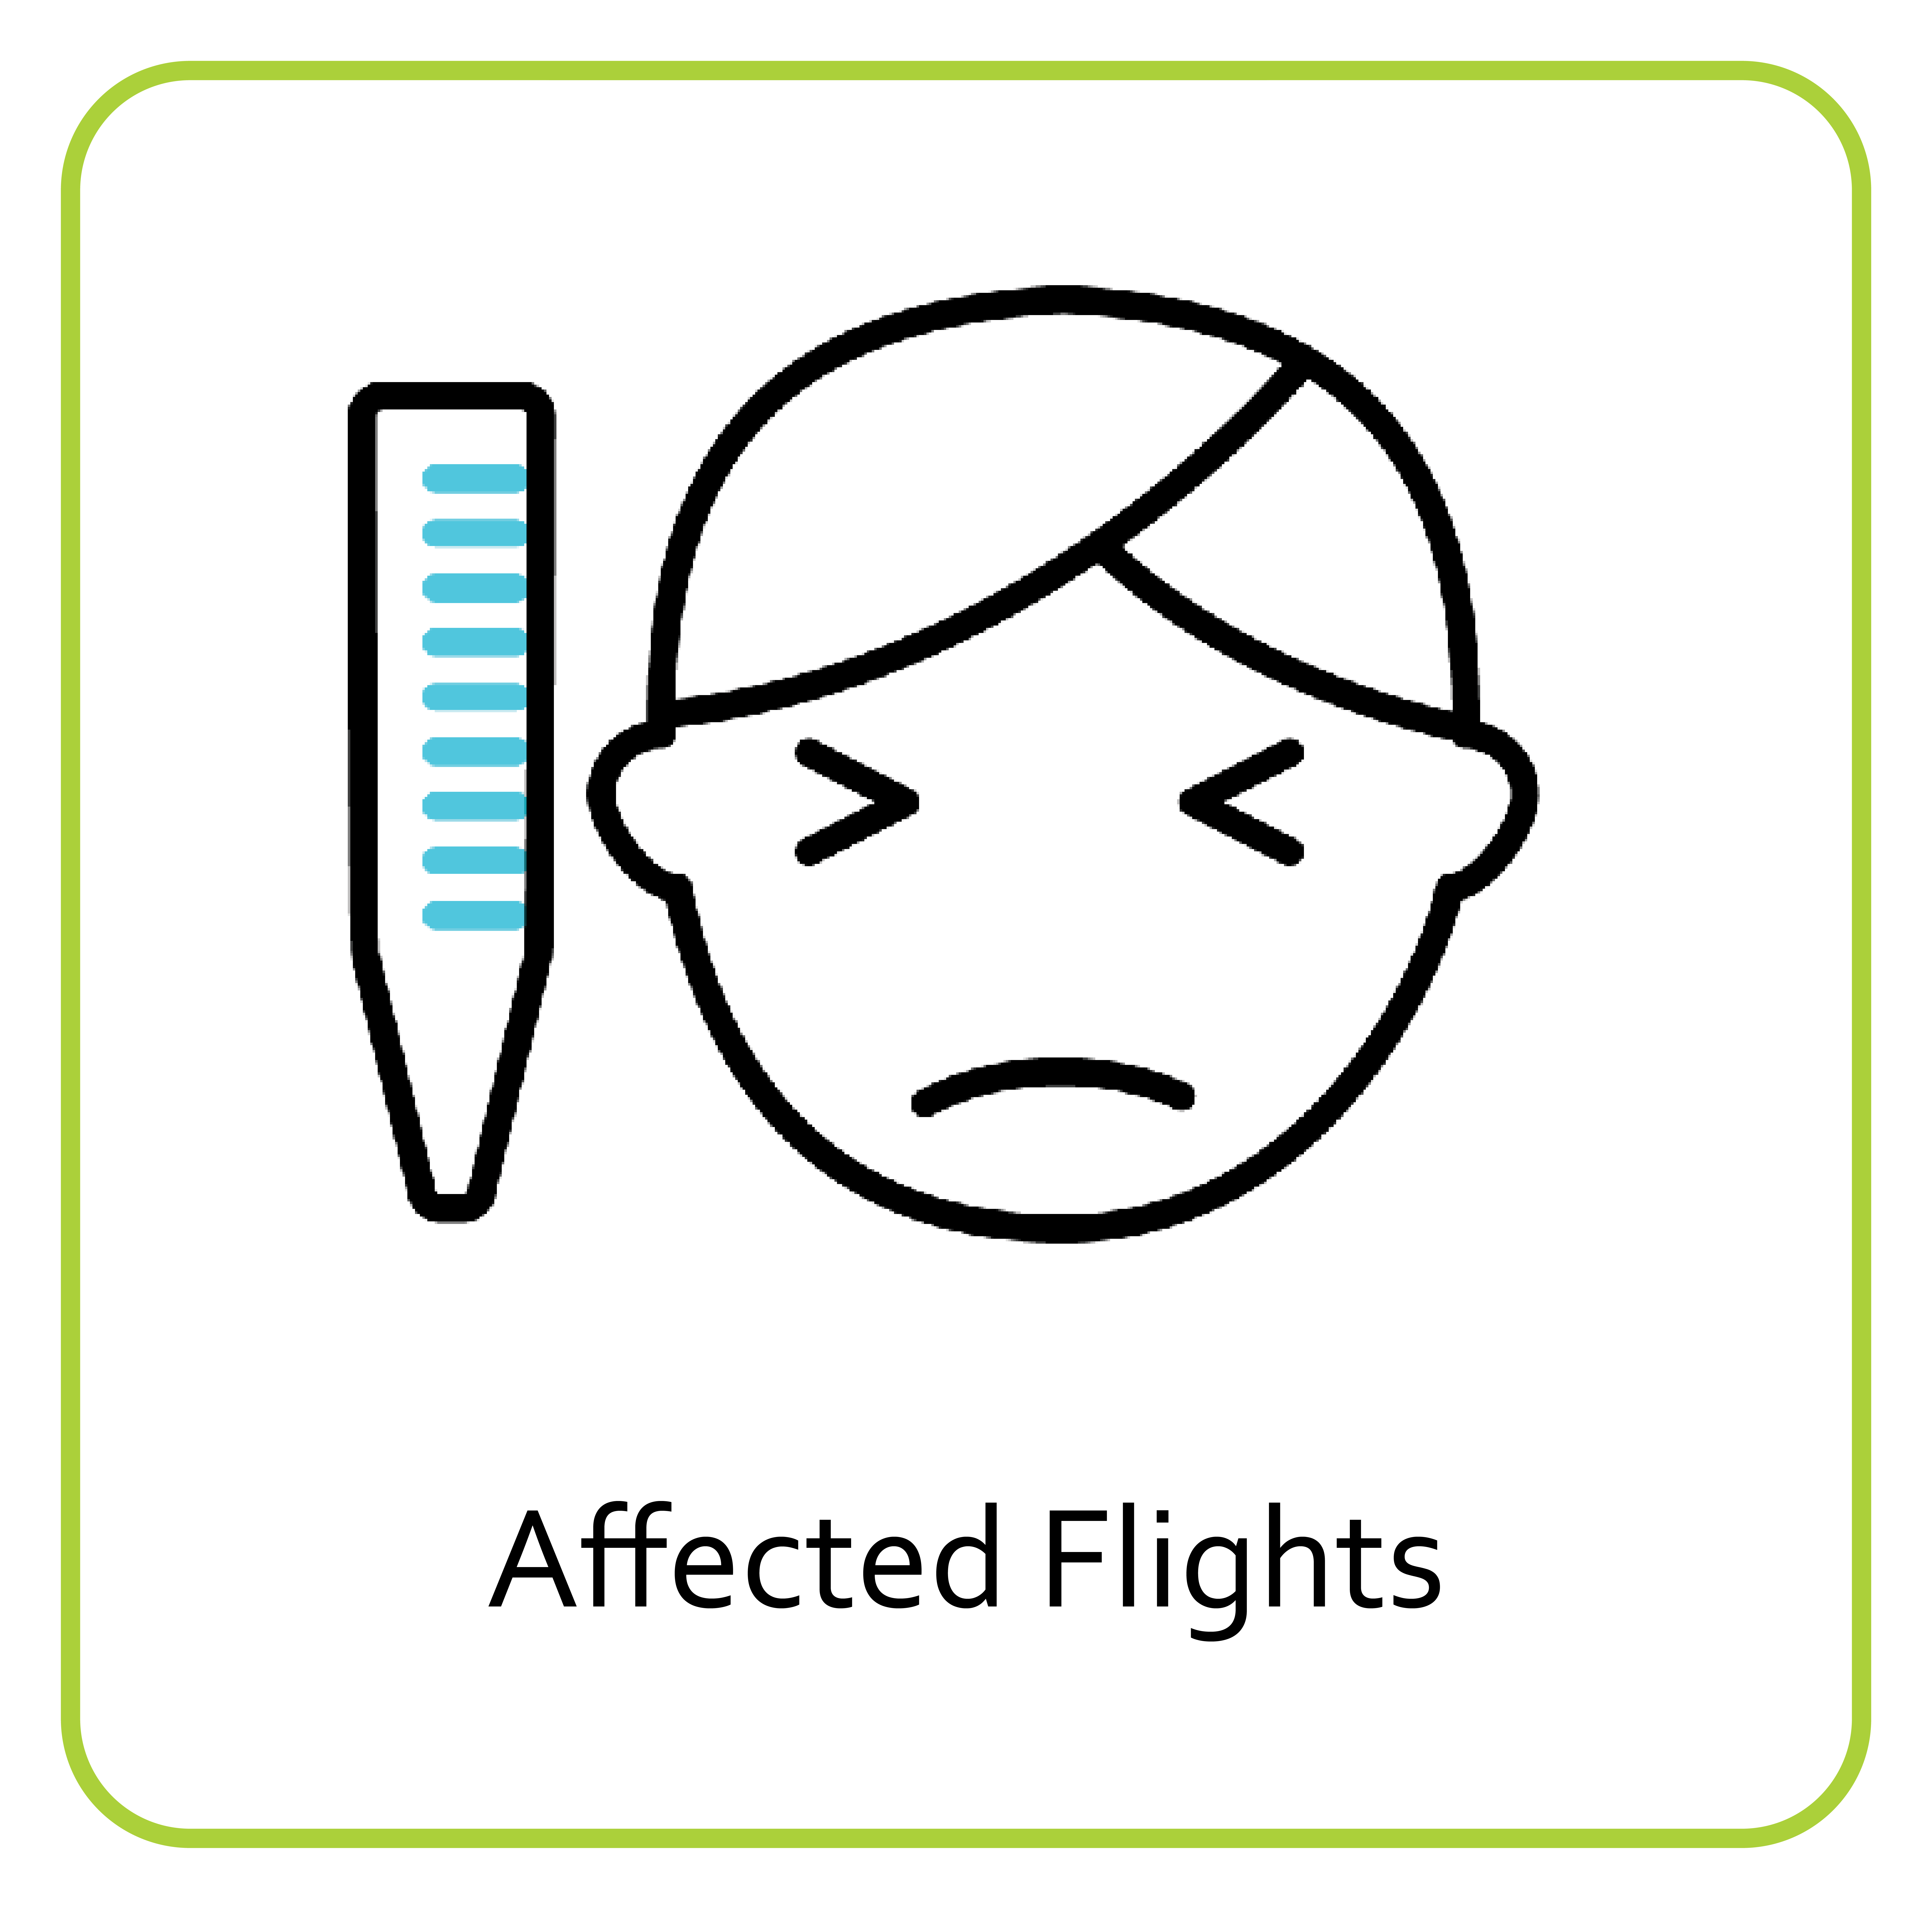 Information on affected flights